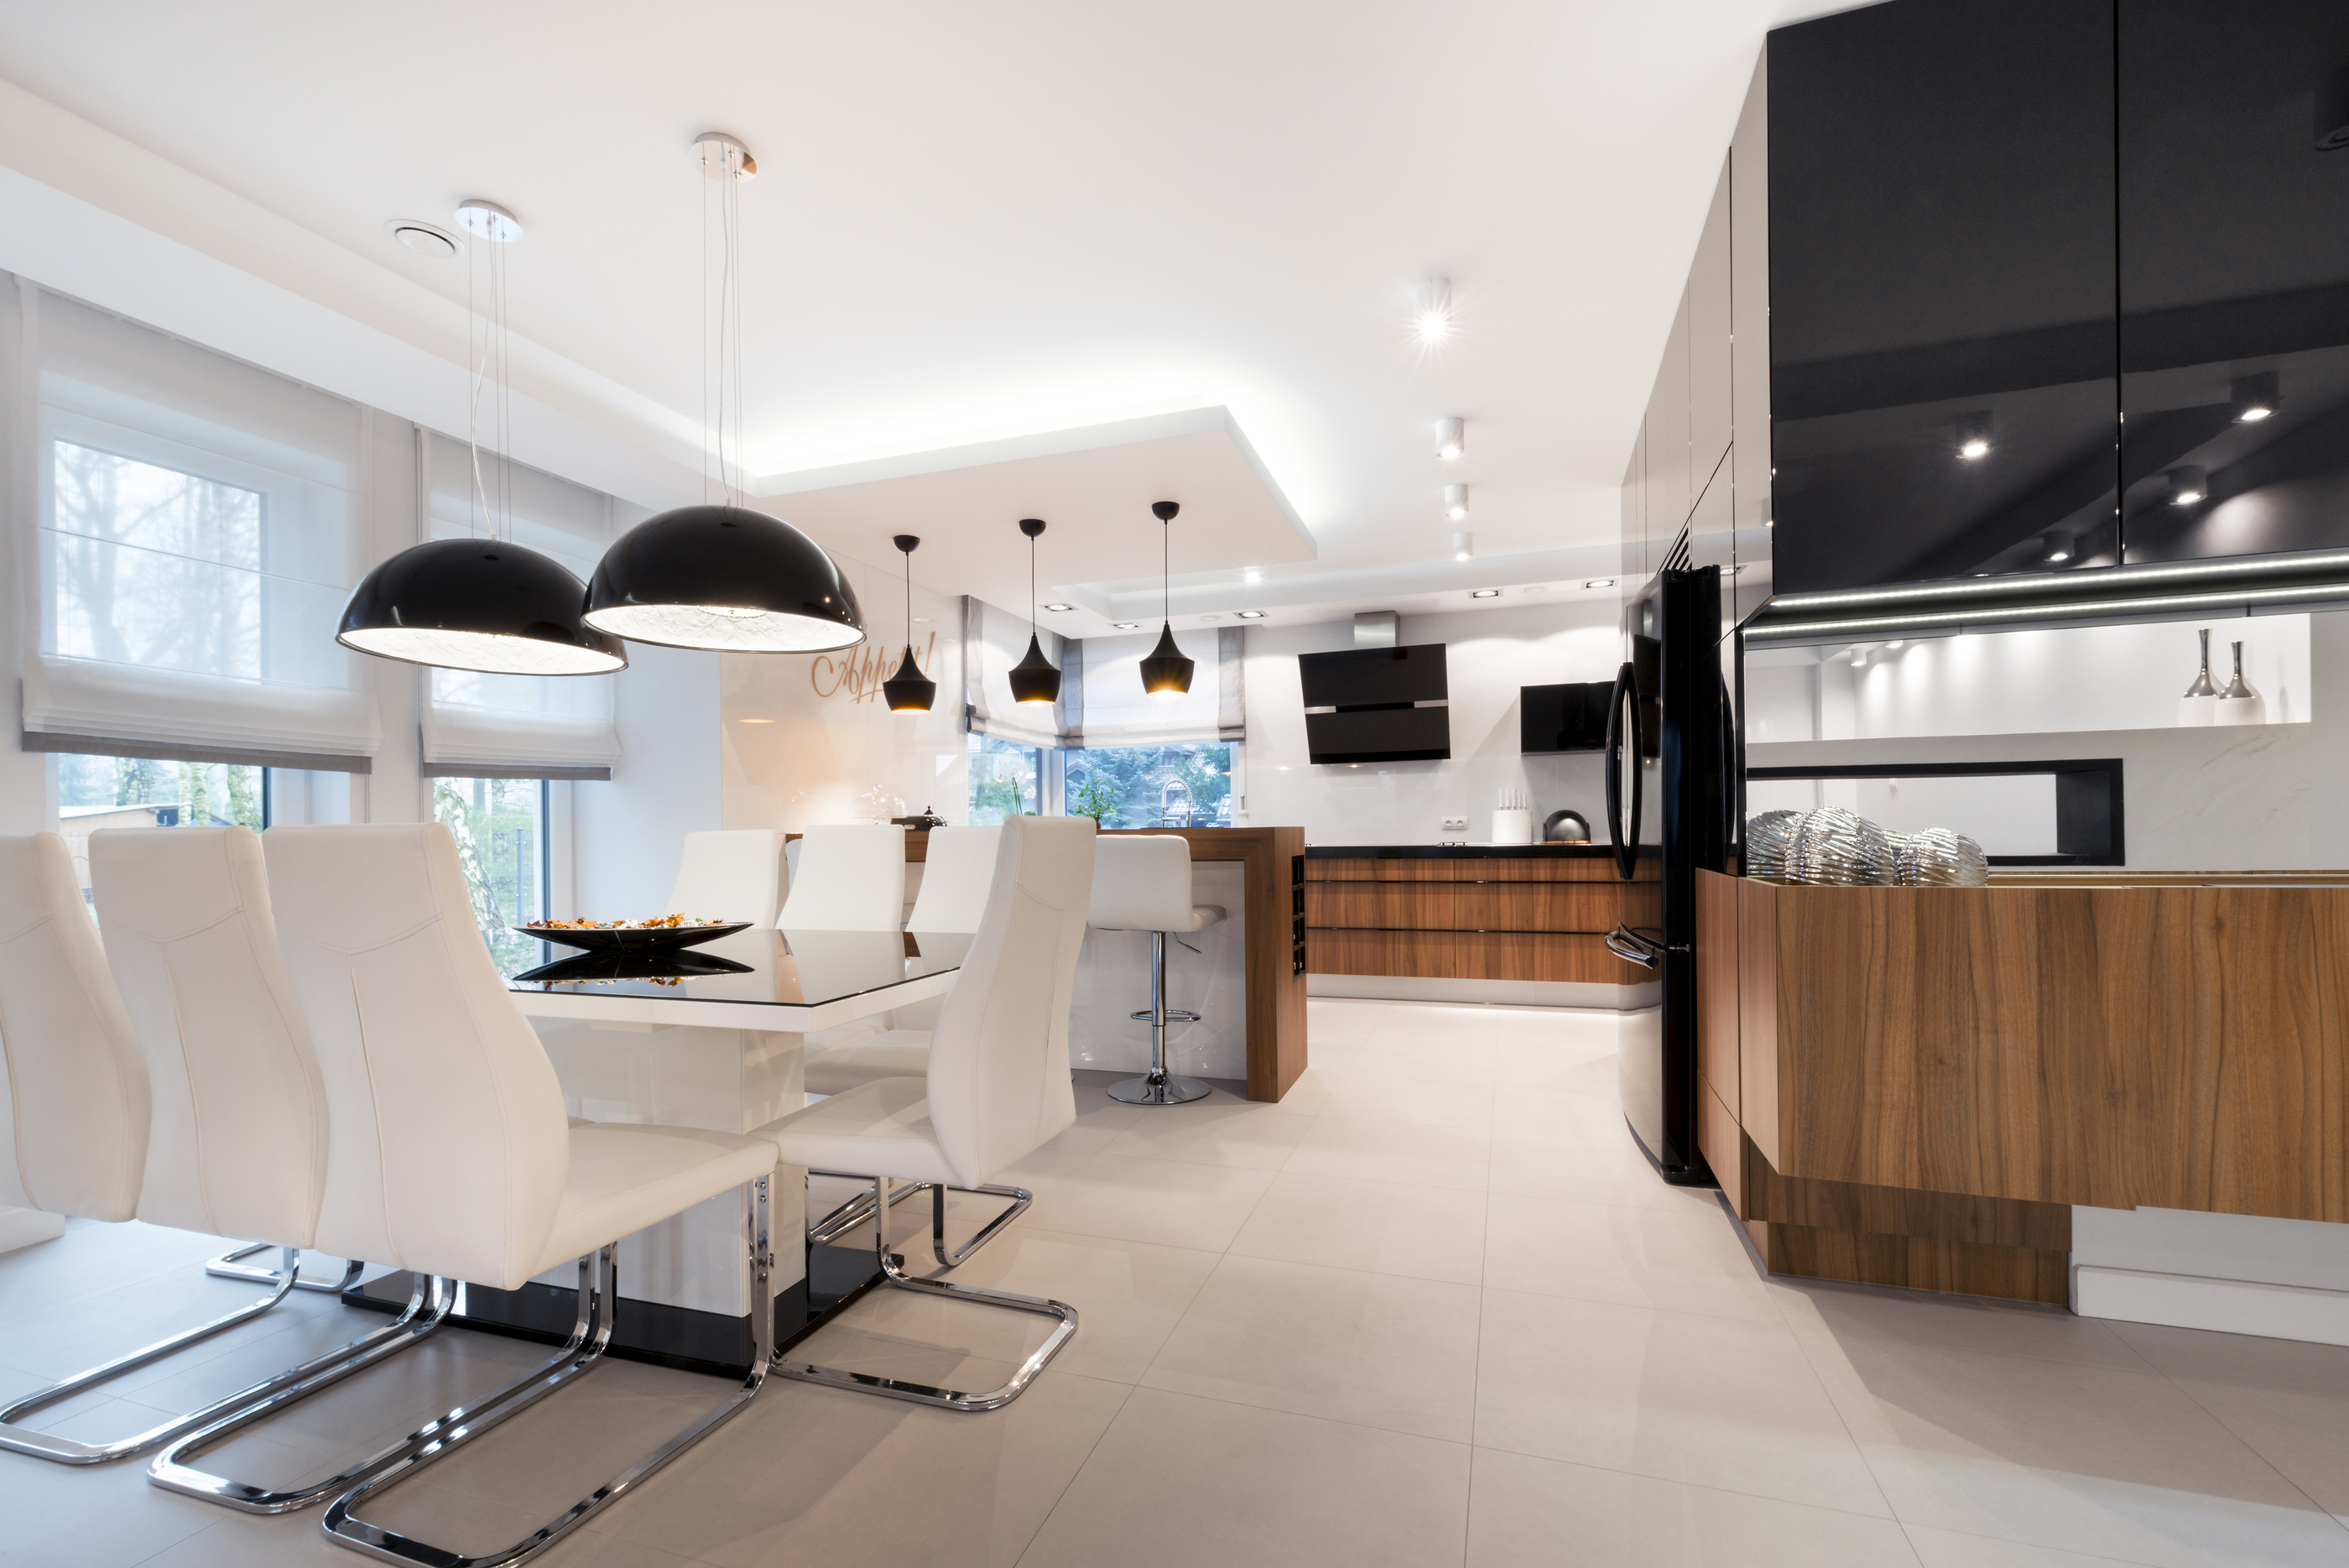 Modern Kitchen Interior Design.jpg